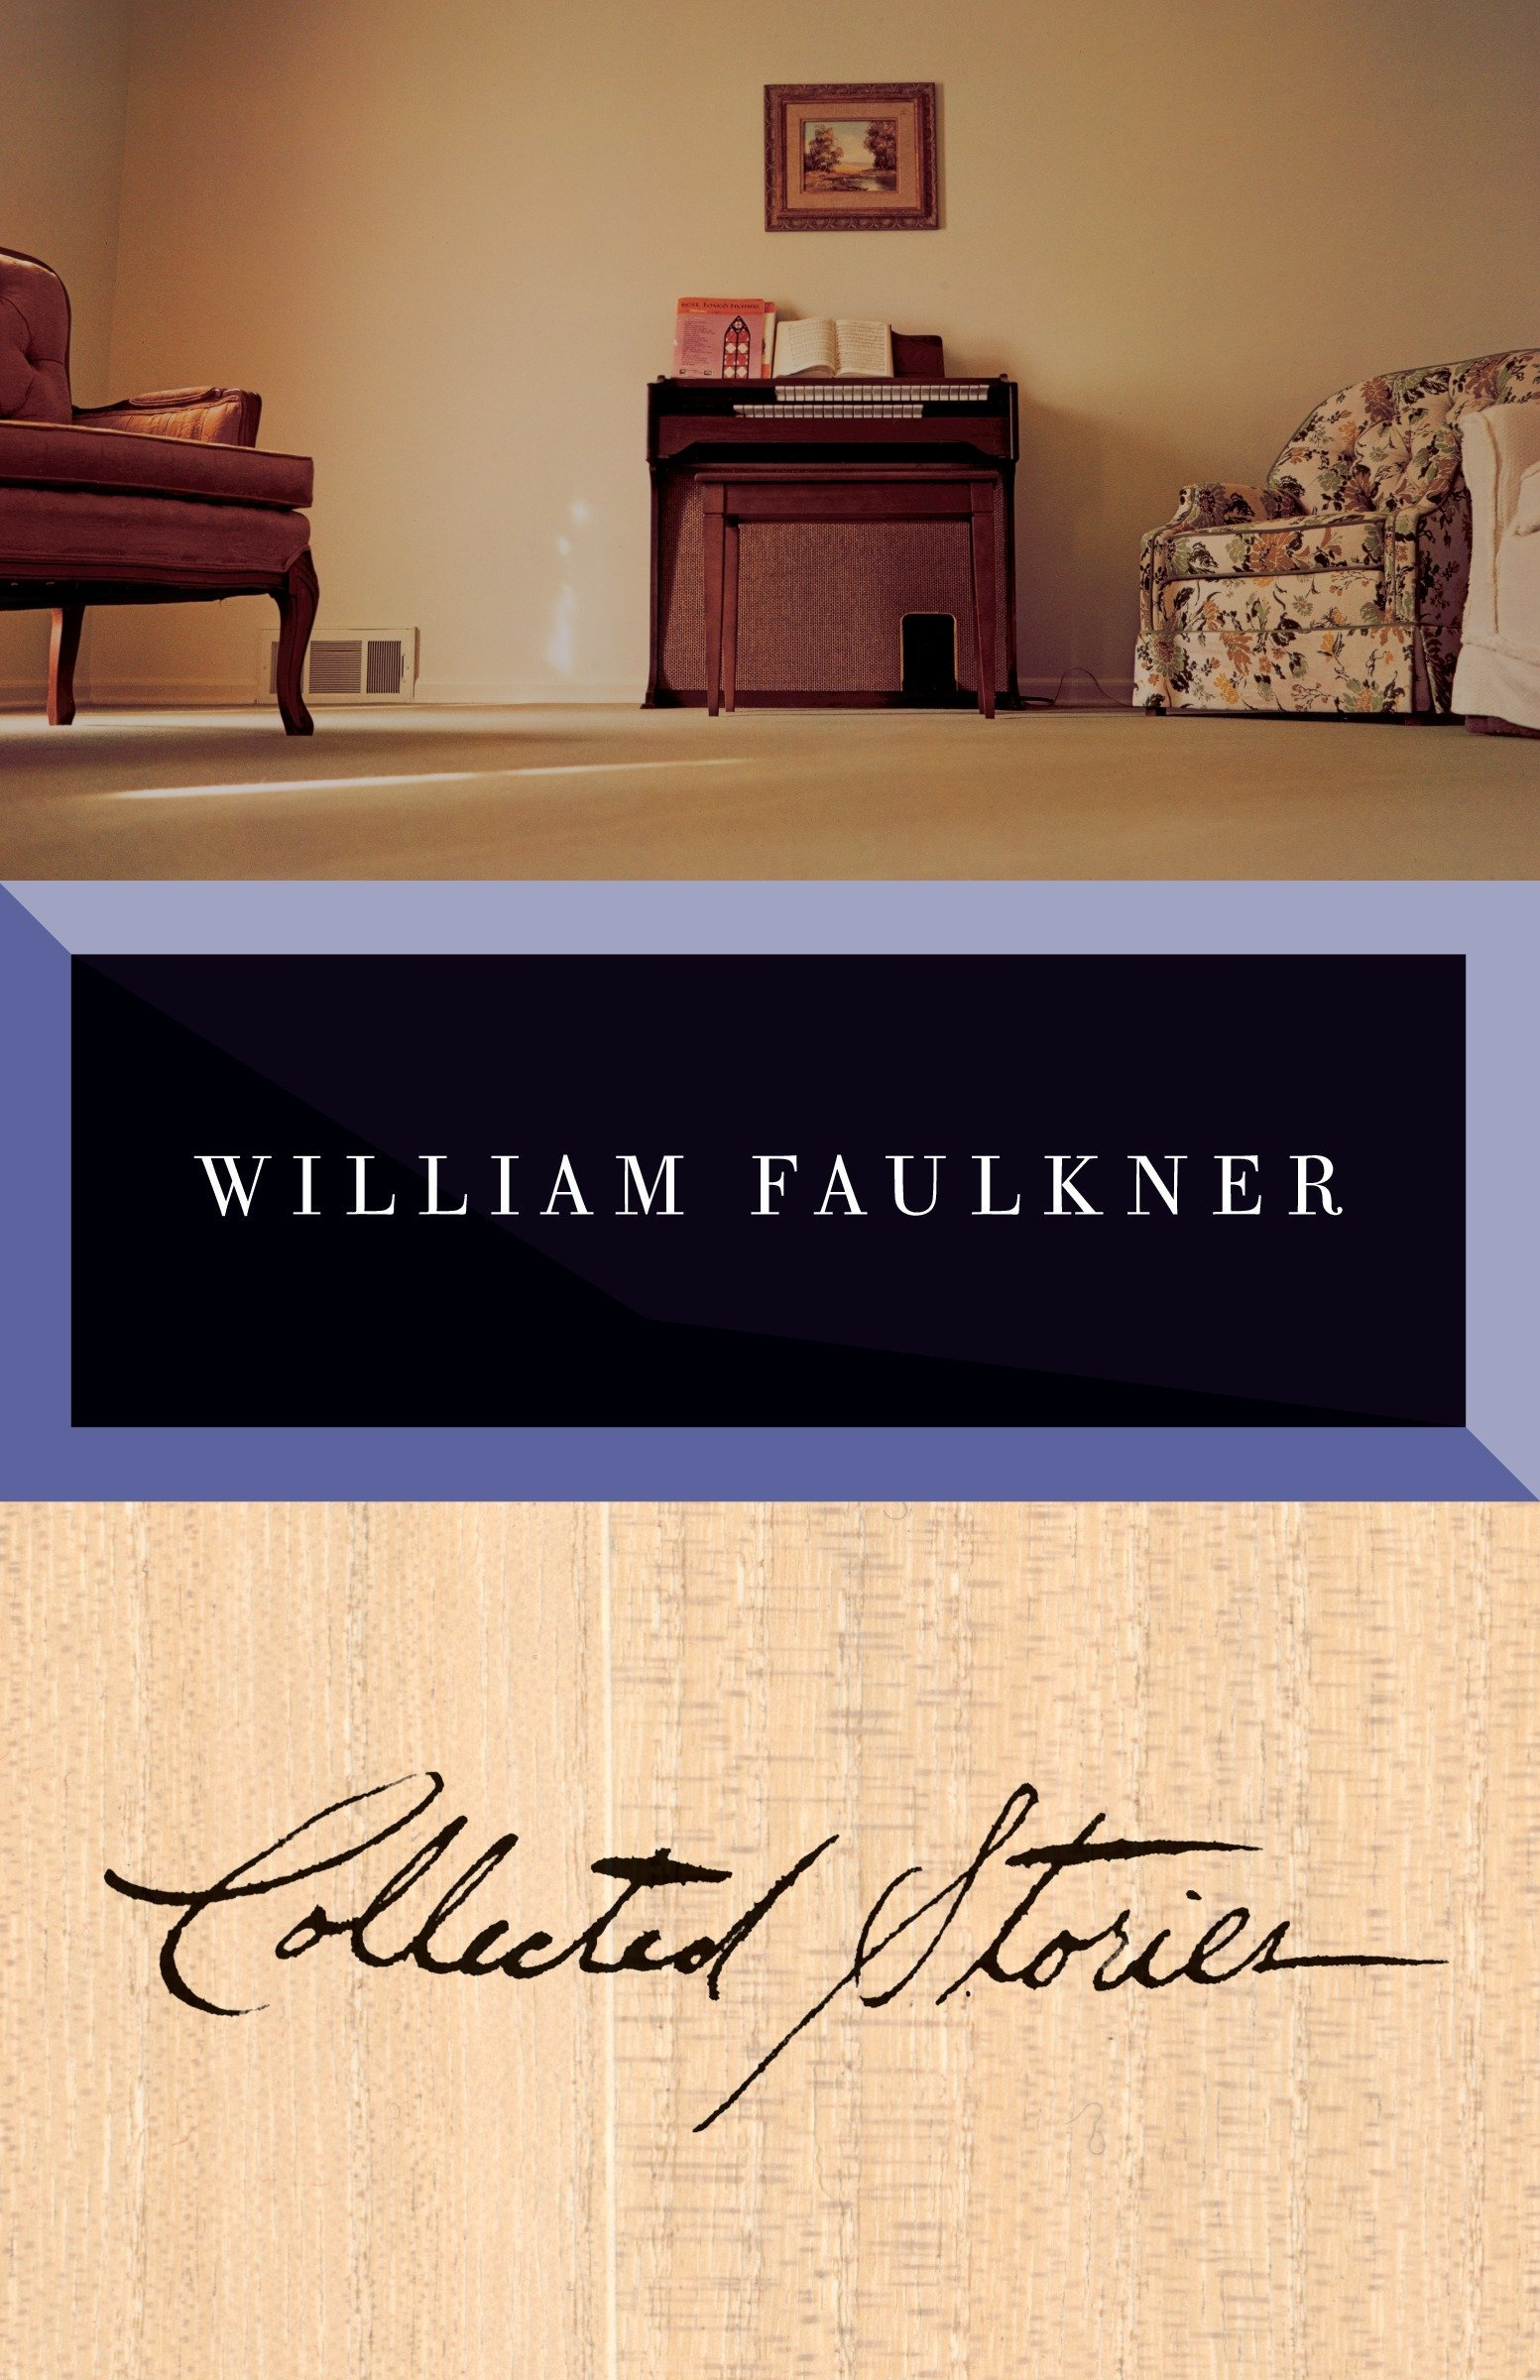 Read Online Collected Stories of William Faulkner pdf